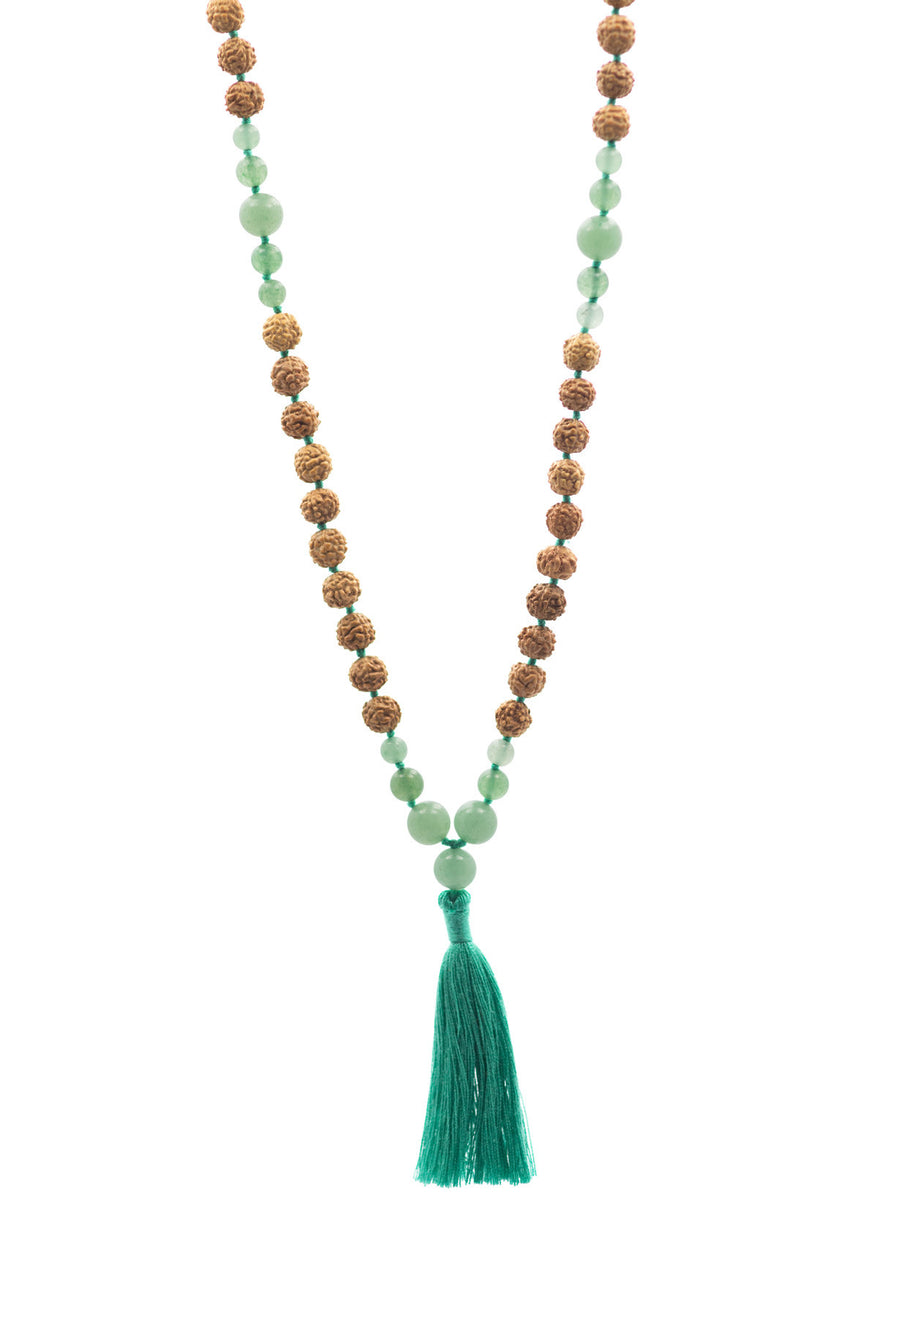 Friendly Mala - Bali Malas